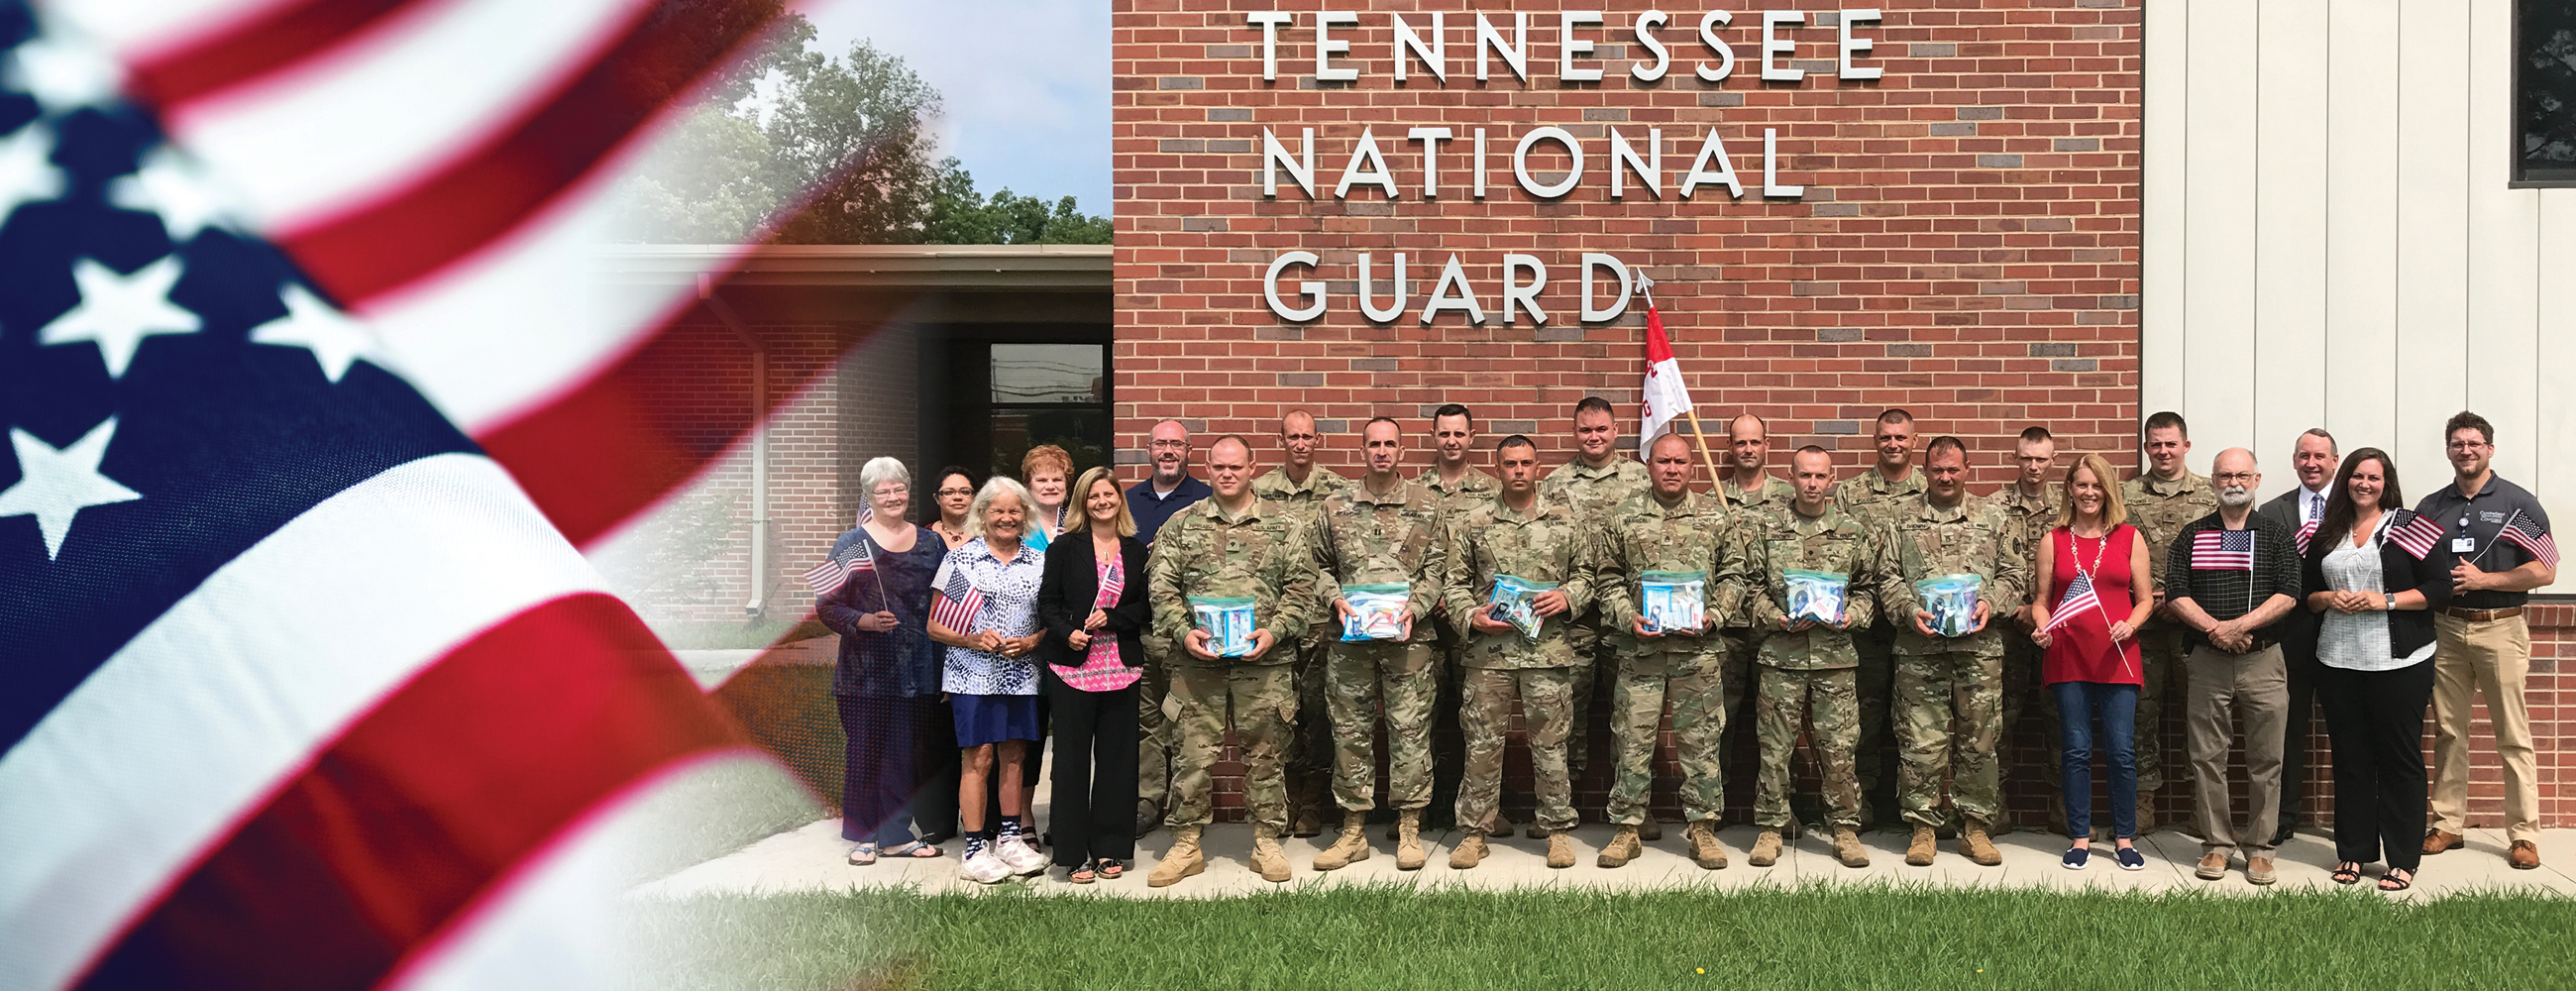 Crossville National Guard Prepares for Deployment